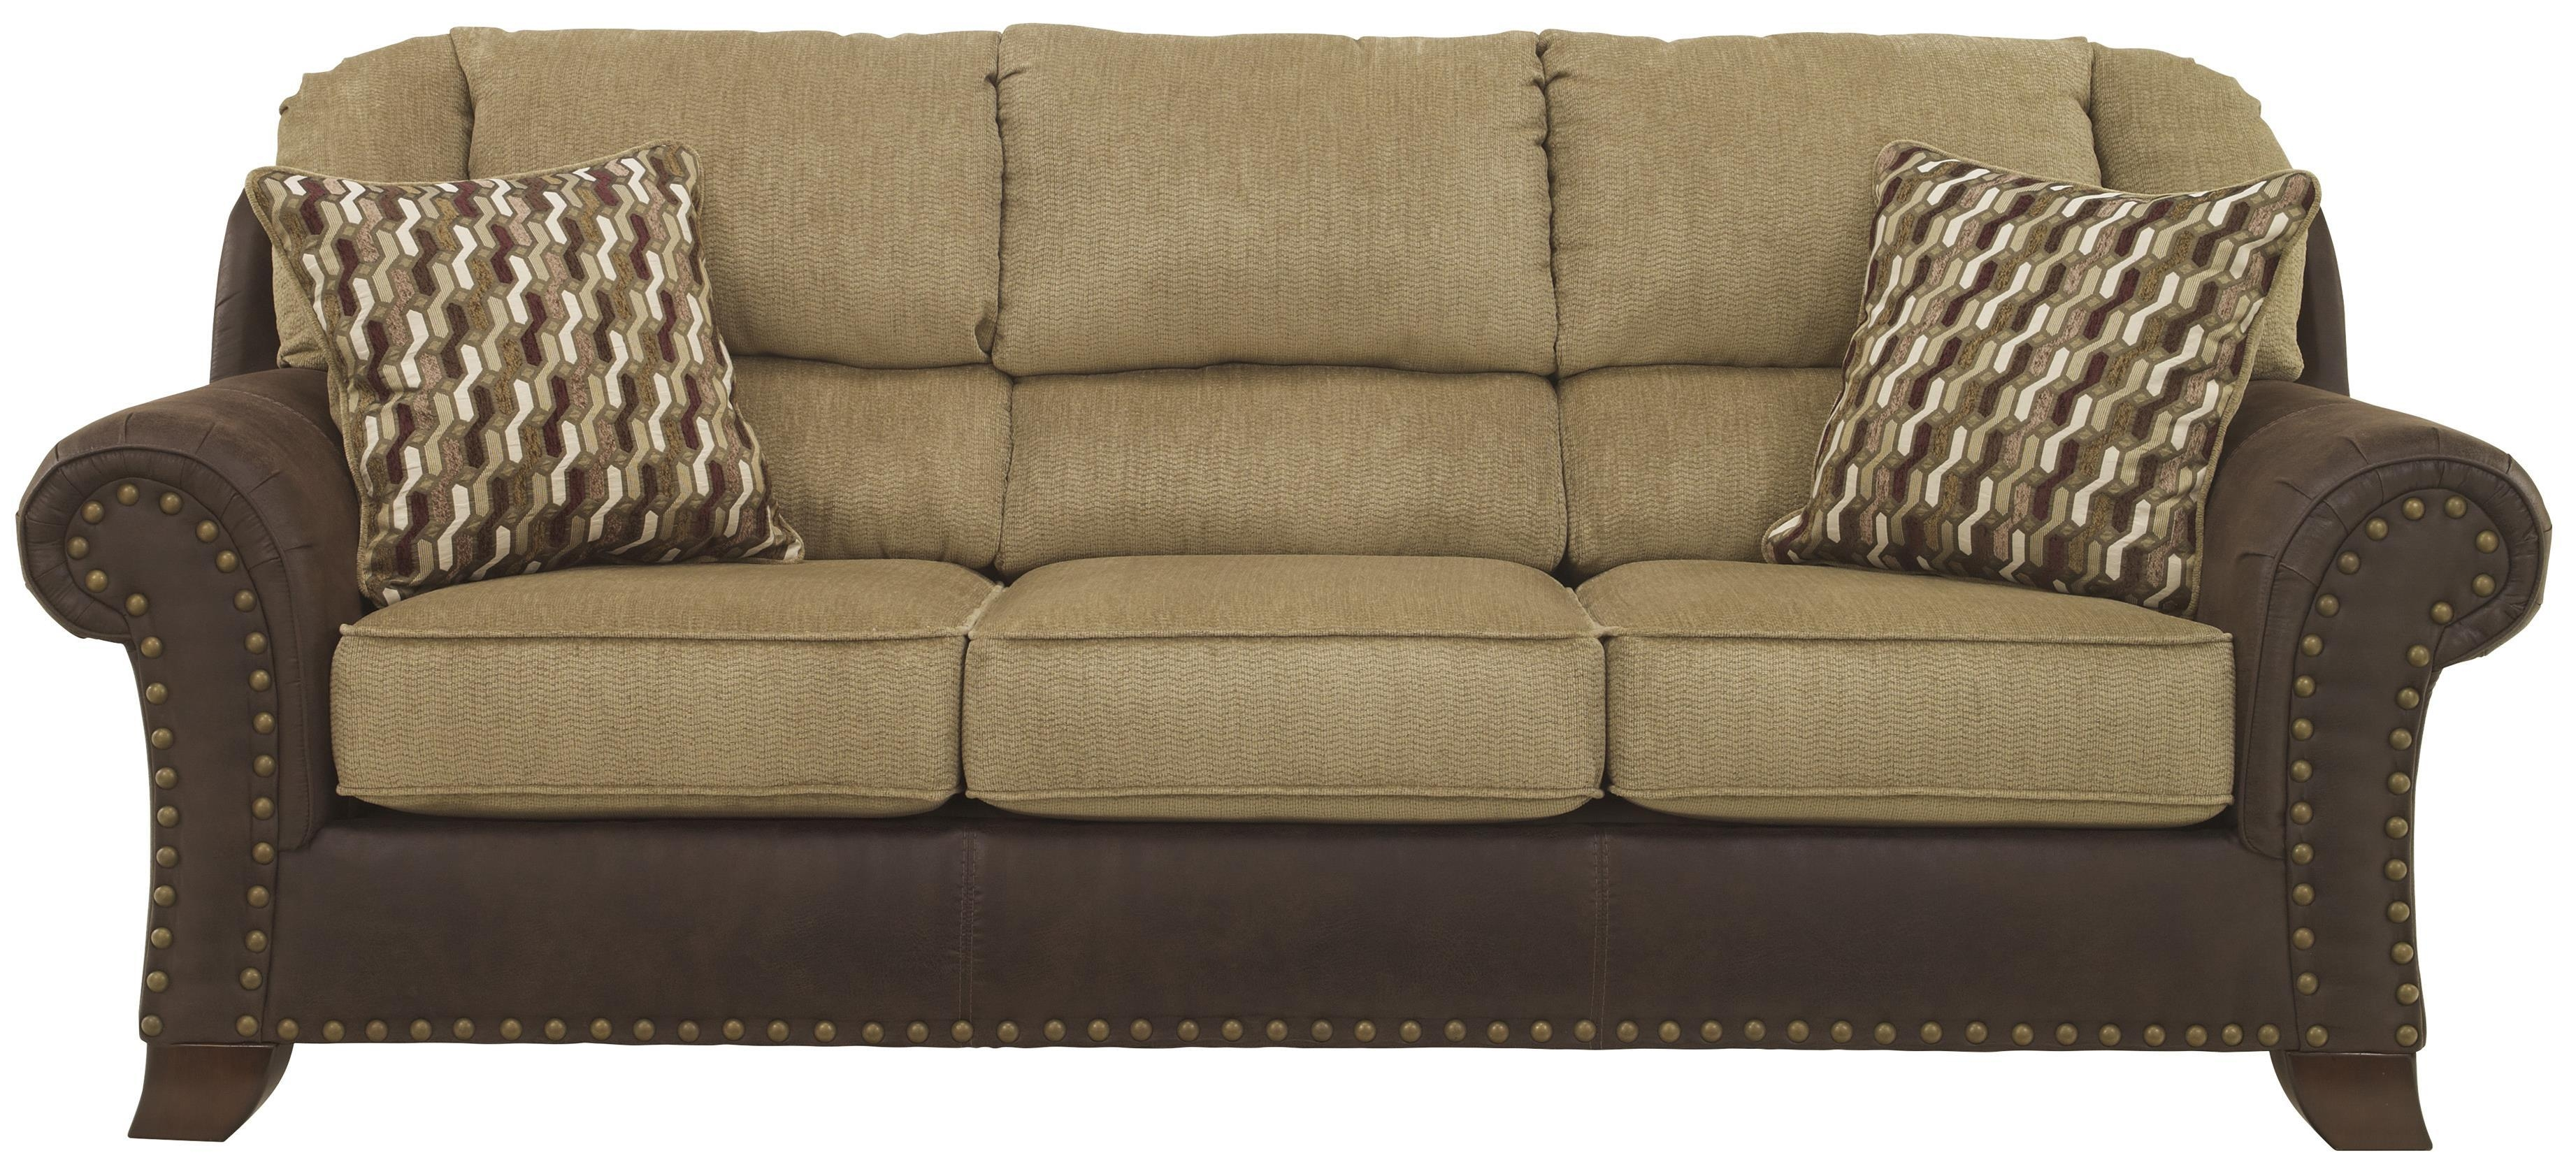 Two Tone Sofa With Chenille Fabric/faux Leather Upholstery Within Upholstery Fabric Sofas (Image 15 of 22)